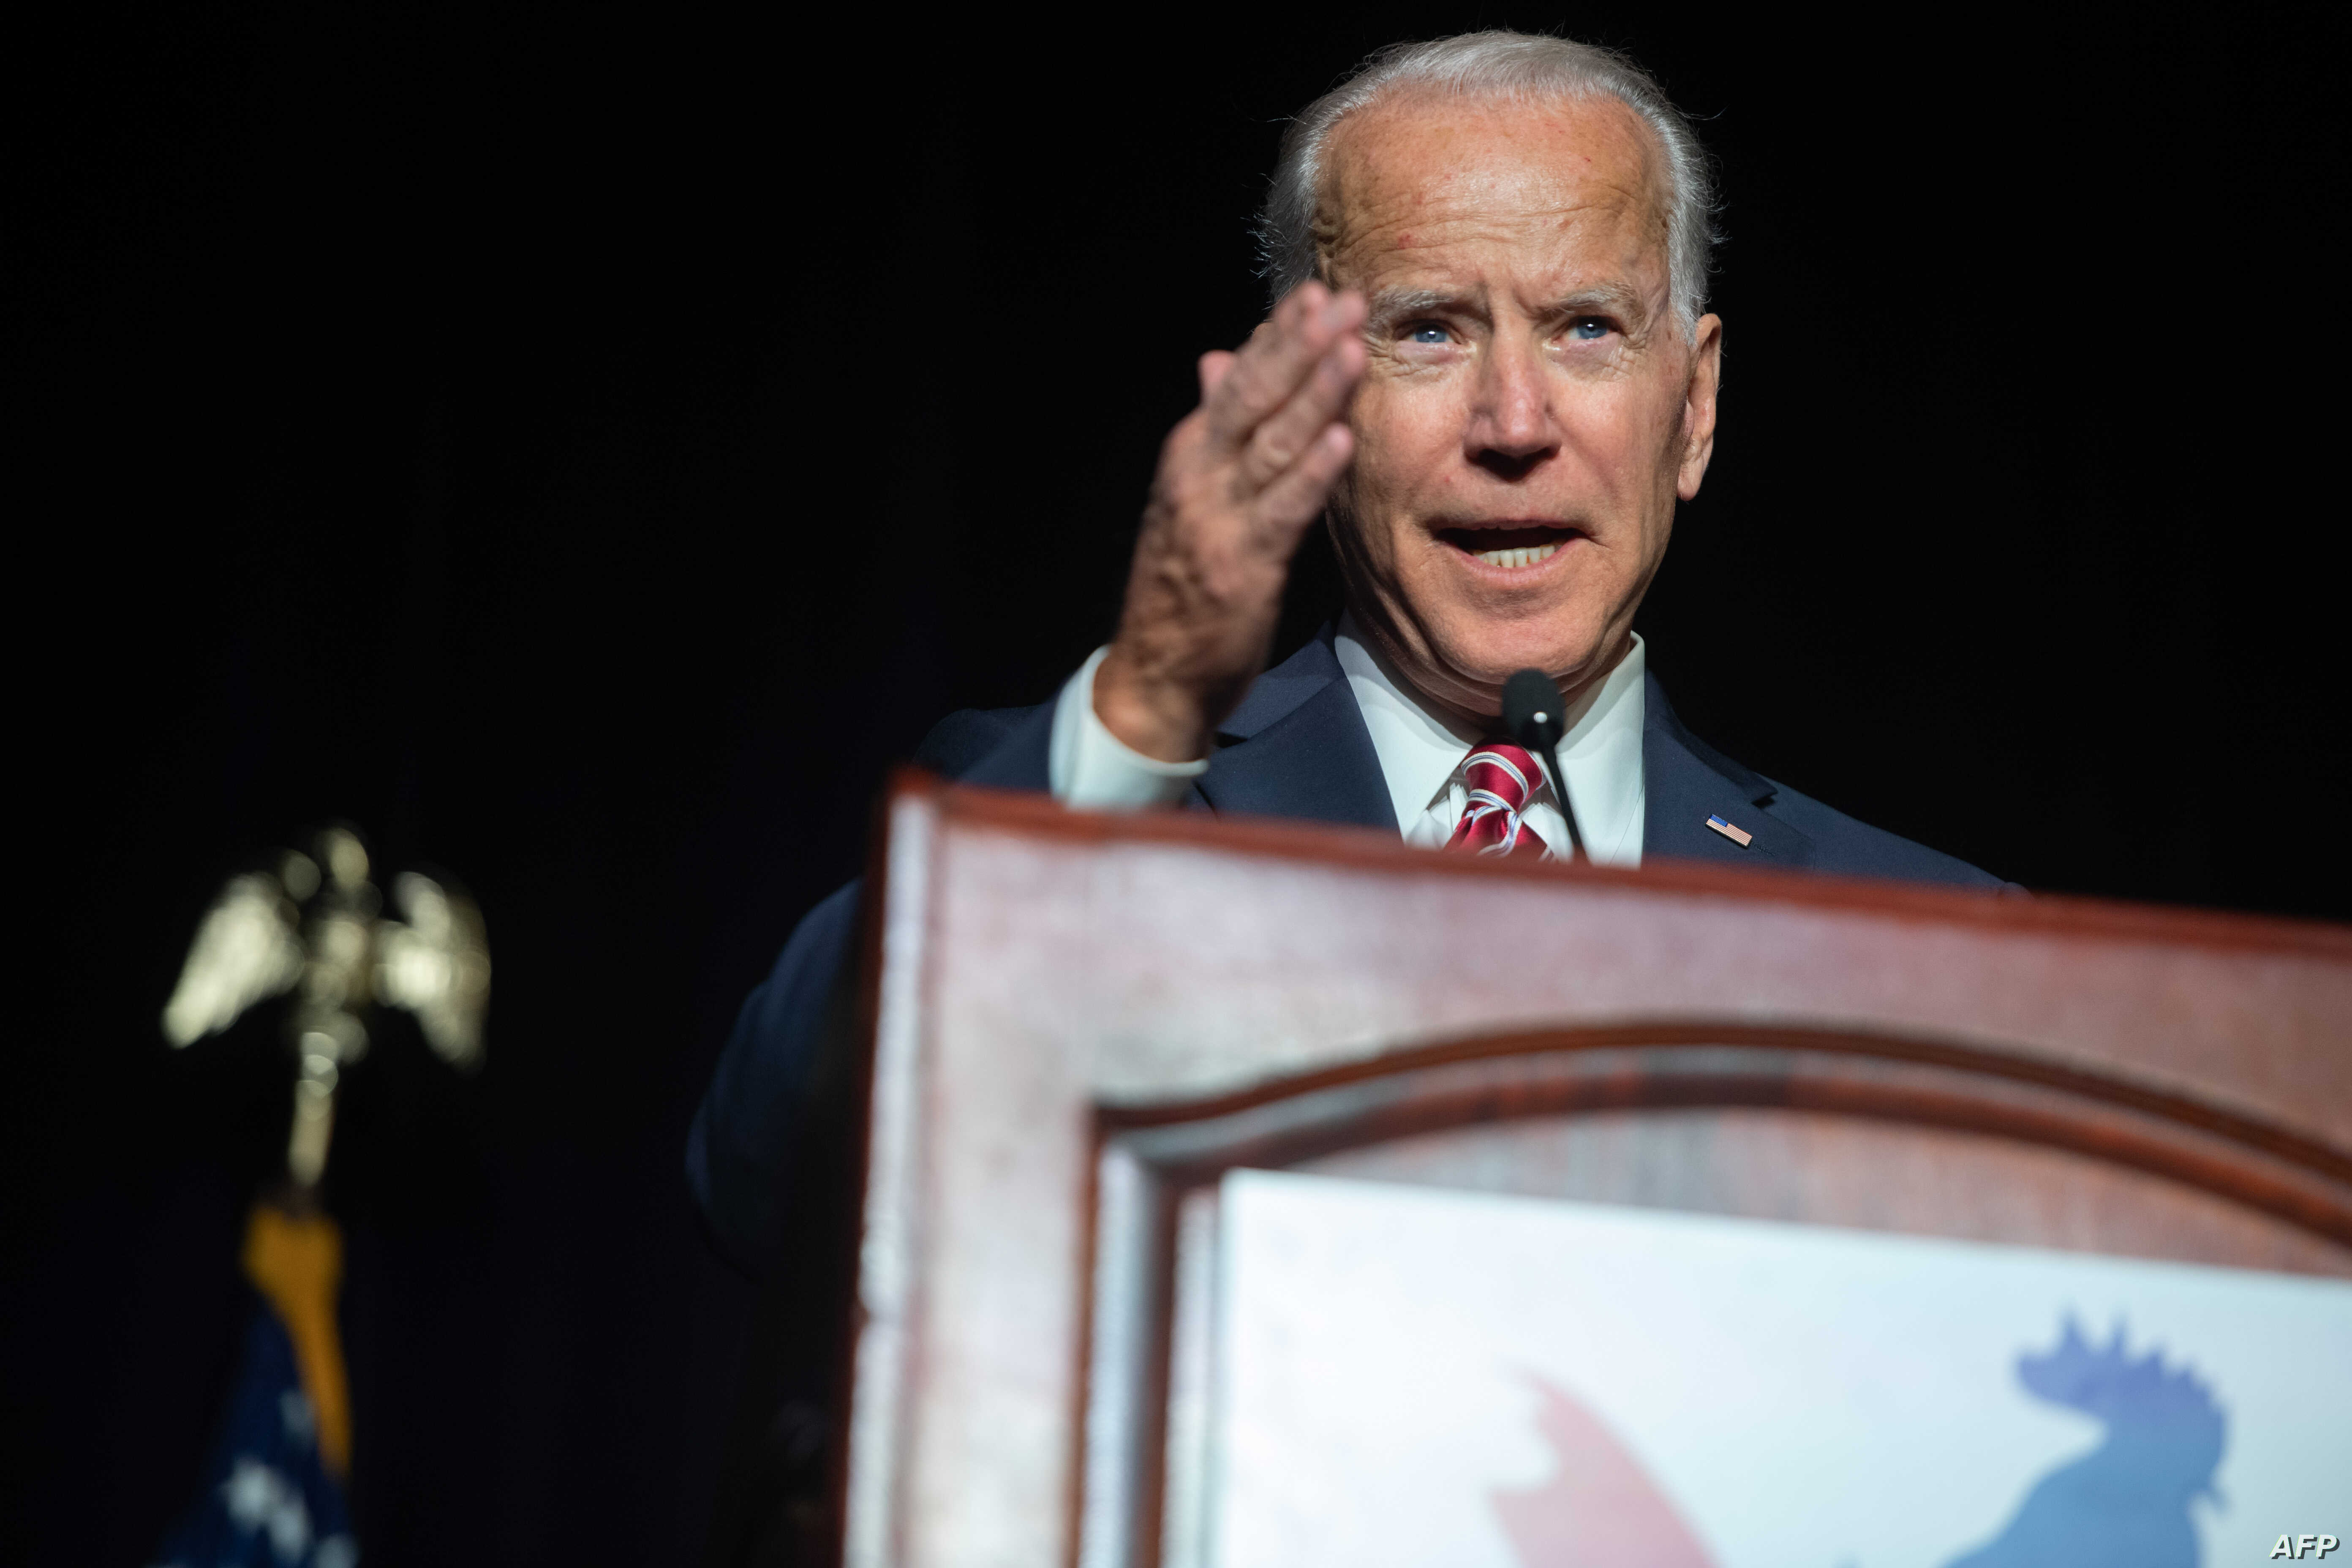 Joe Biden speaks during the First State Democratic Dinner in Dover, Delaware, March 16, 2019. The former vice president stopped just short of saying he's running for president in 2020.